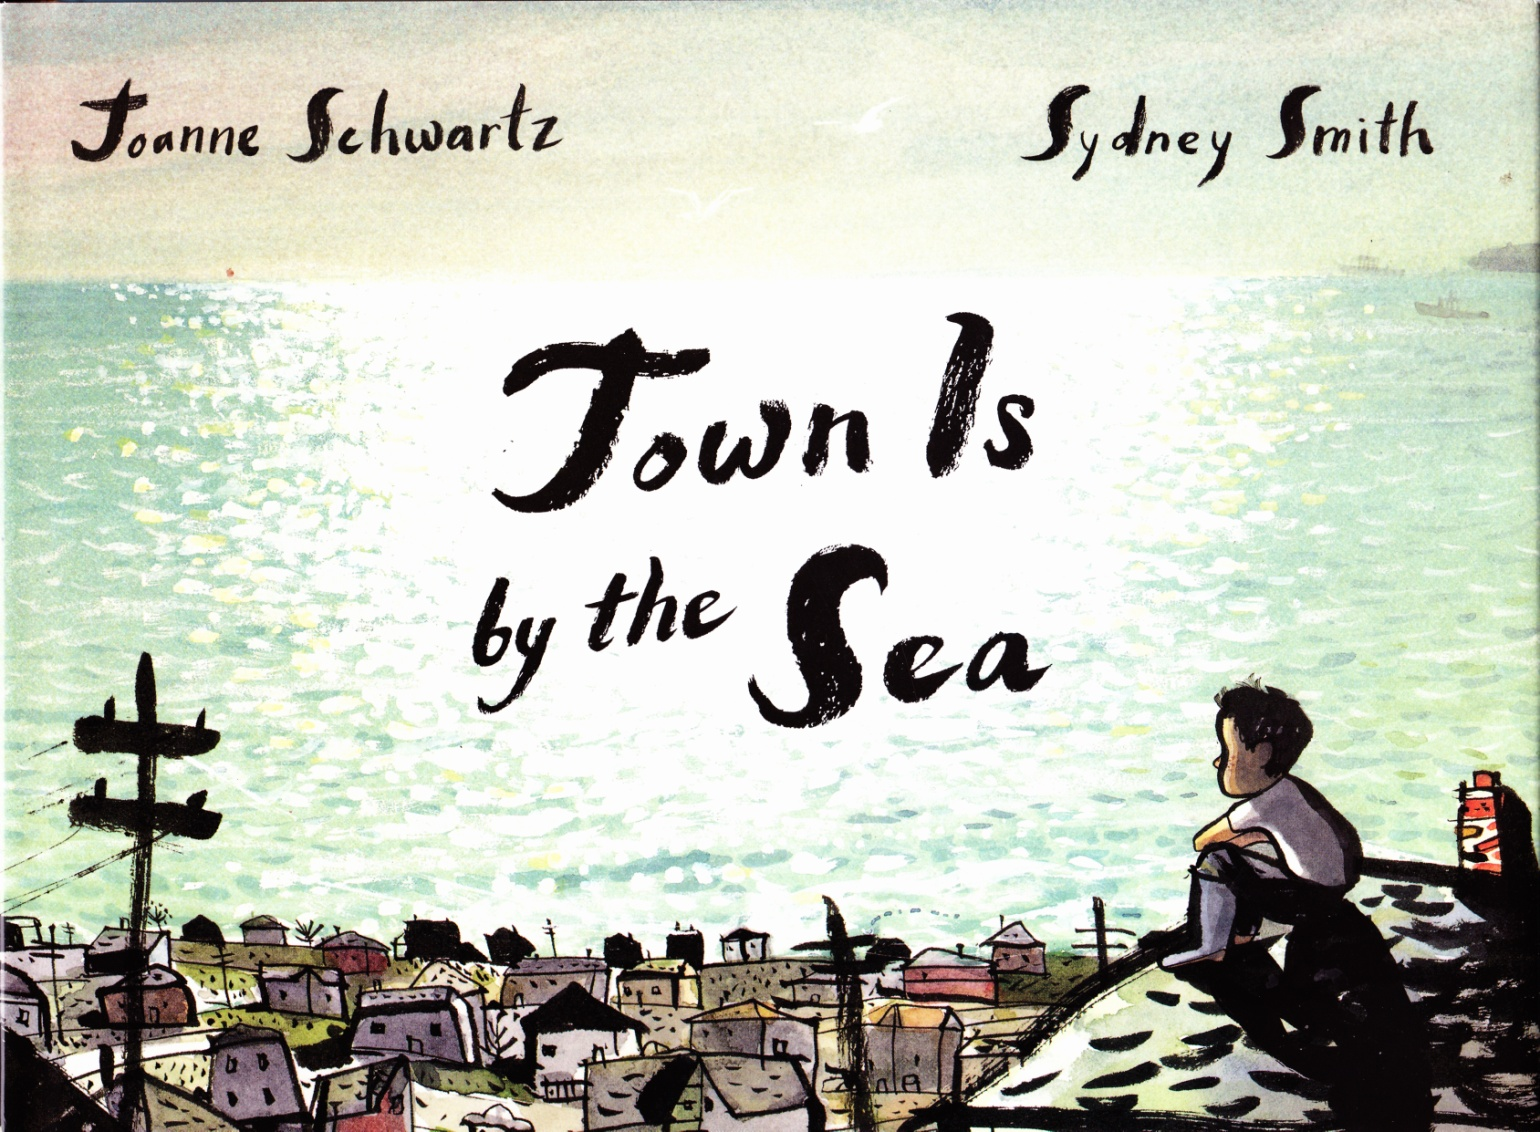 C:\Users\Robert\Documents\CARTOONING ILLUSTRATION ANIMATION\IMAGE BY CARTOONIST\S\SMITH Sydney, Town Is by the Sea, 2017, fc.jpg